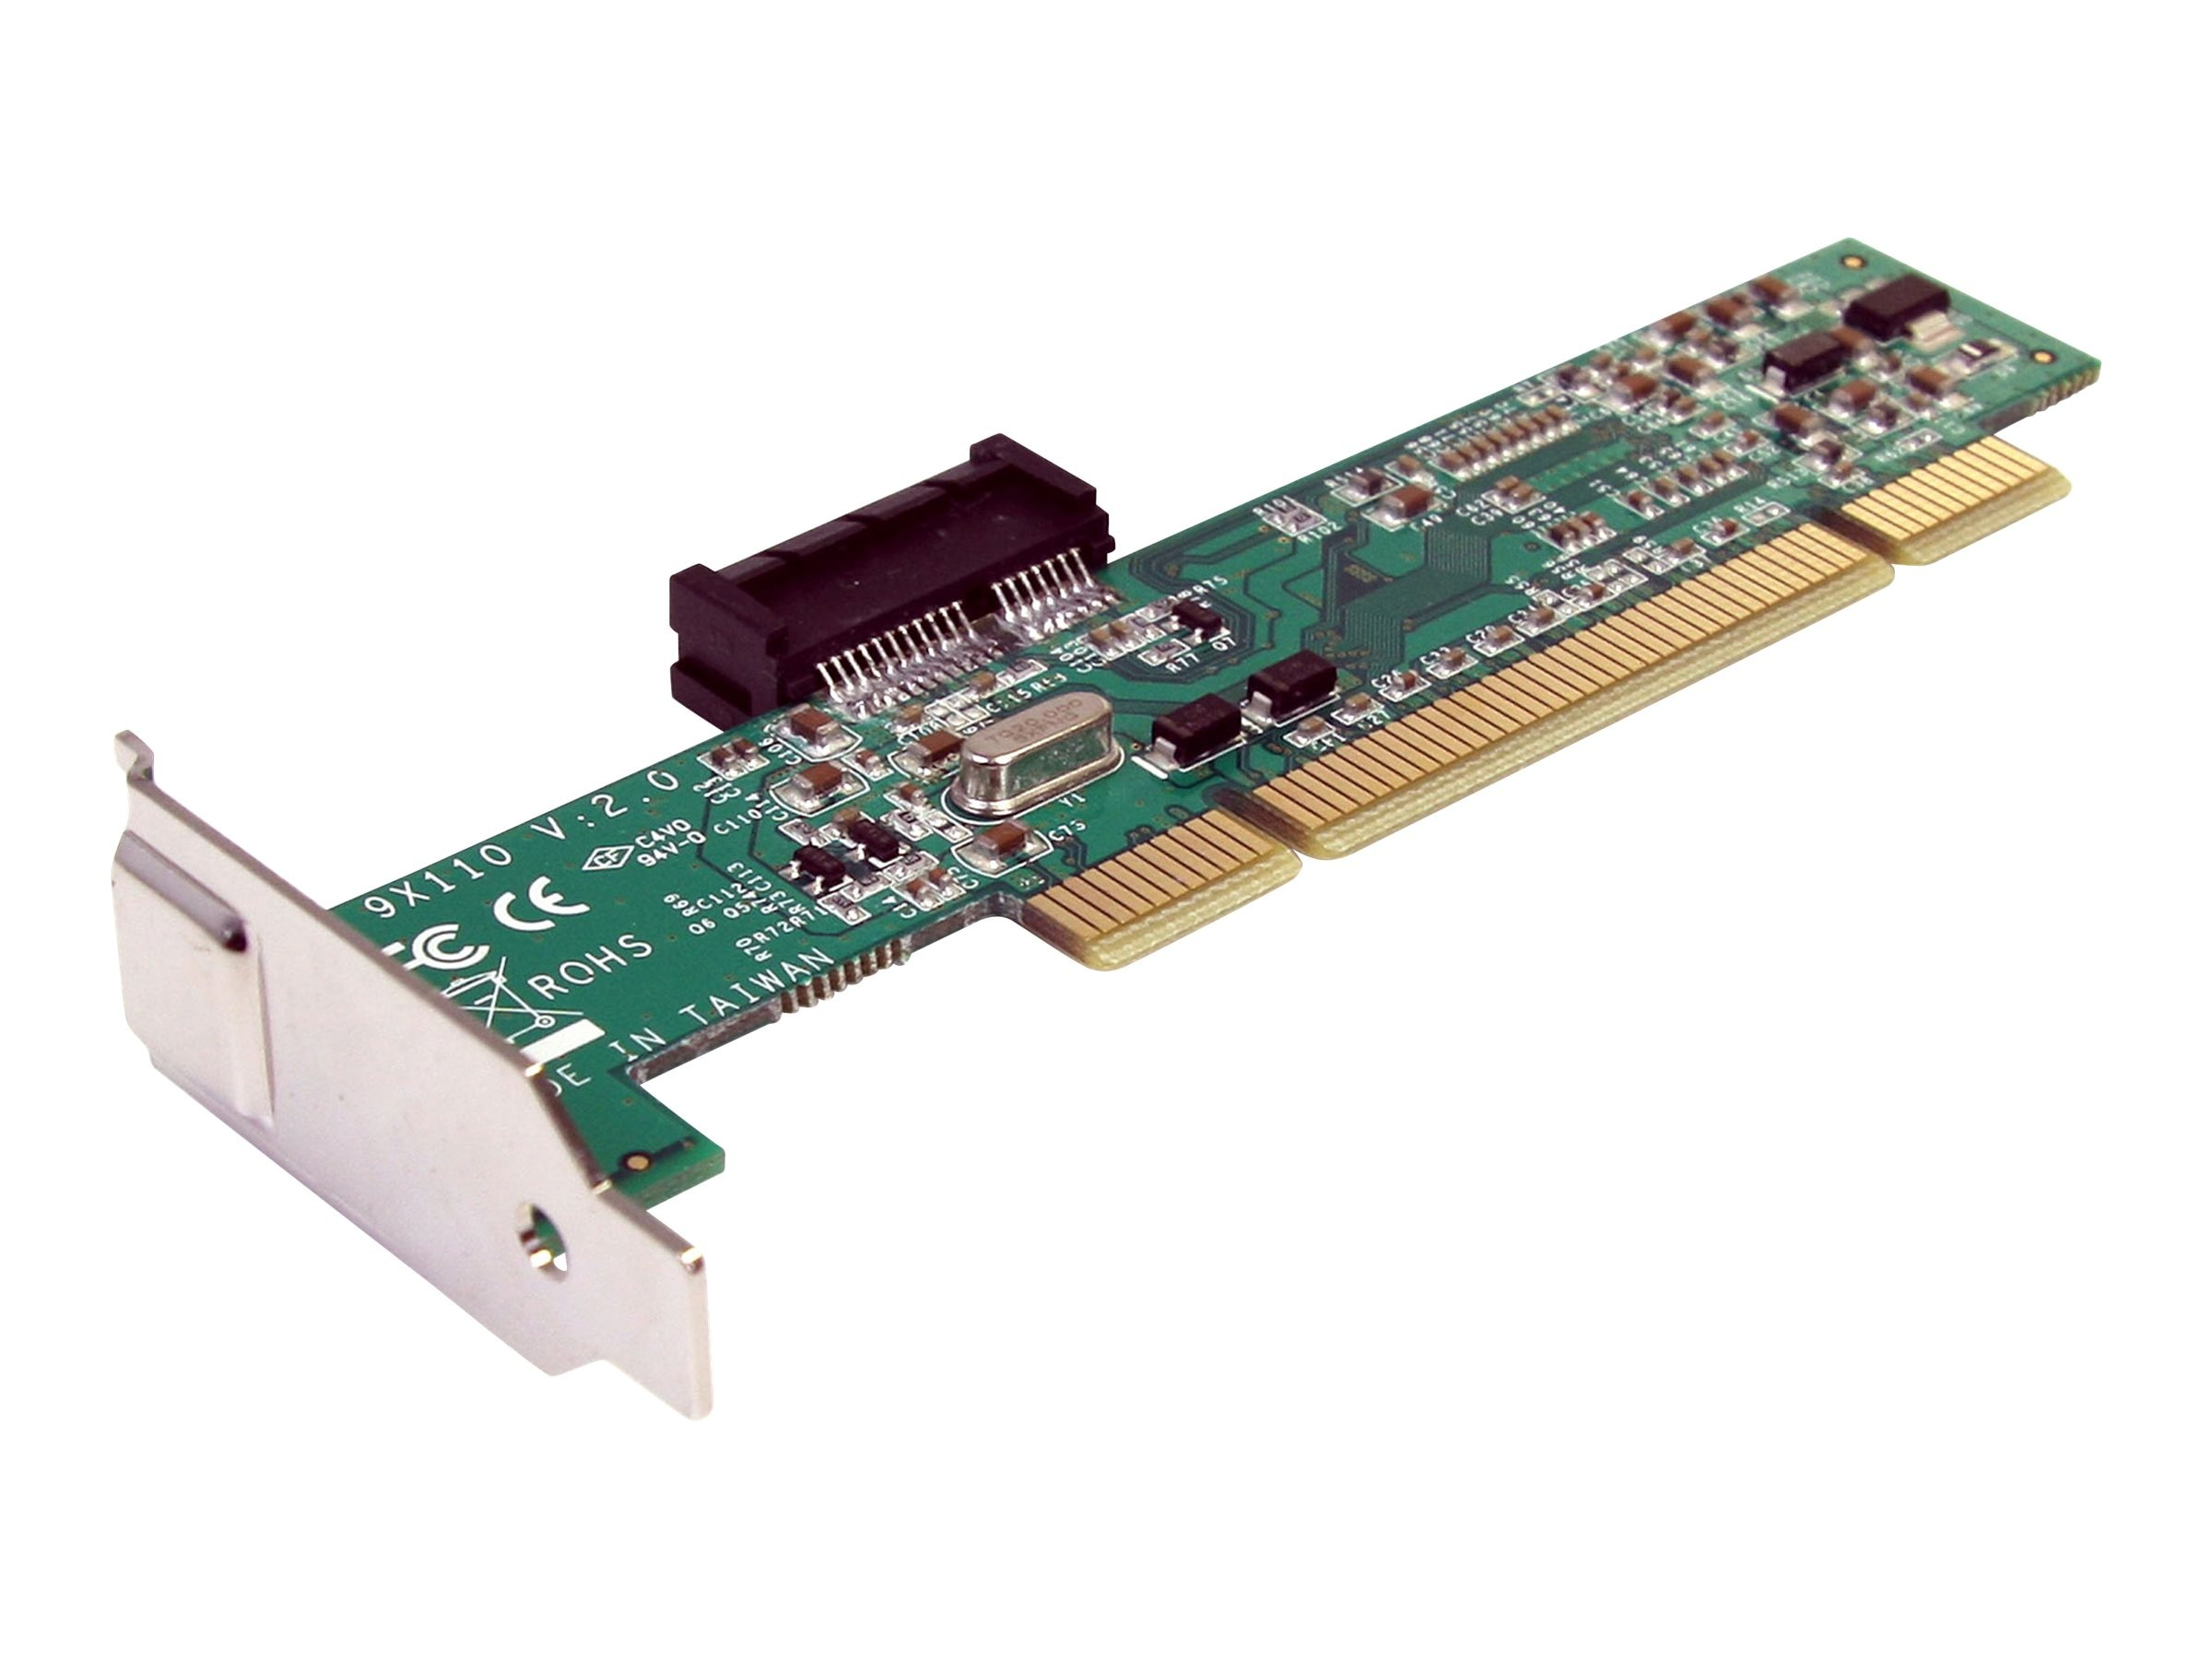 StarTech.com PCI to PCIe Adapter Card-DT MBD, PCI1PEX1, 11074988, Network Adapters & NICs